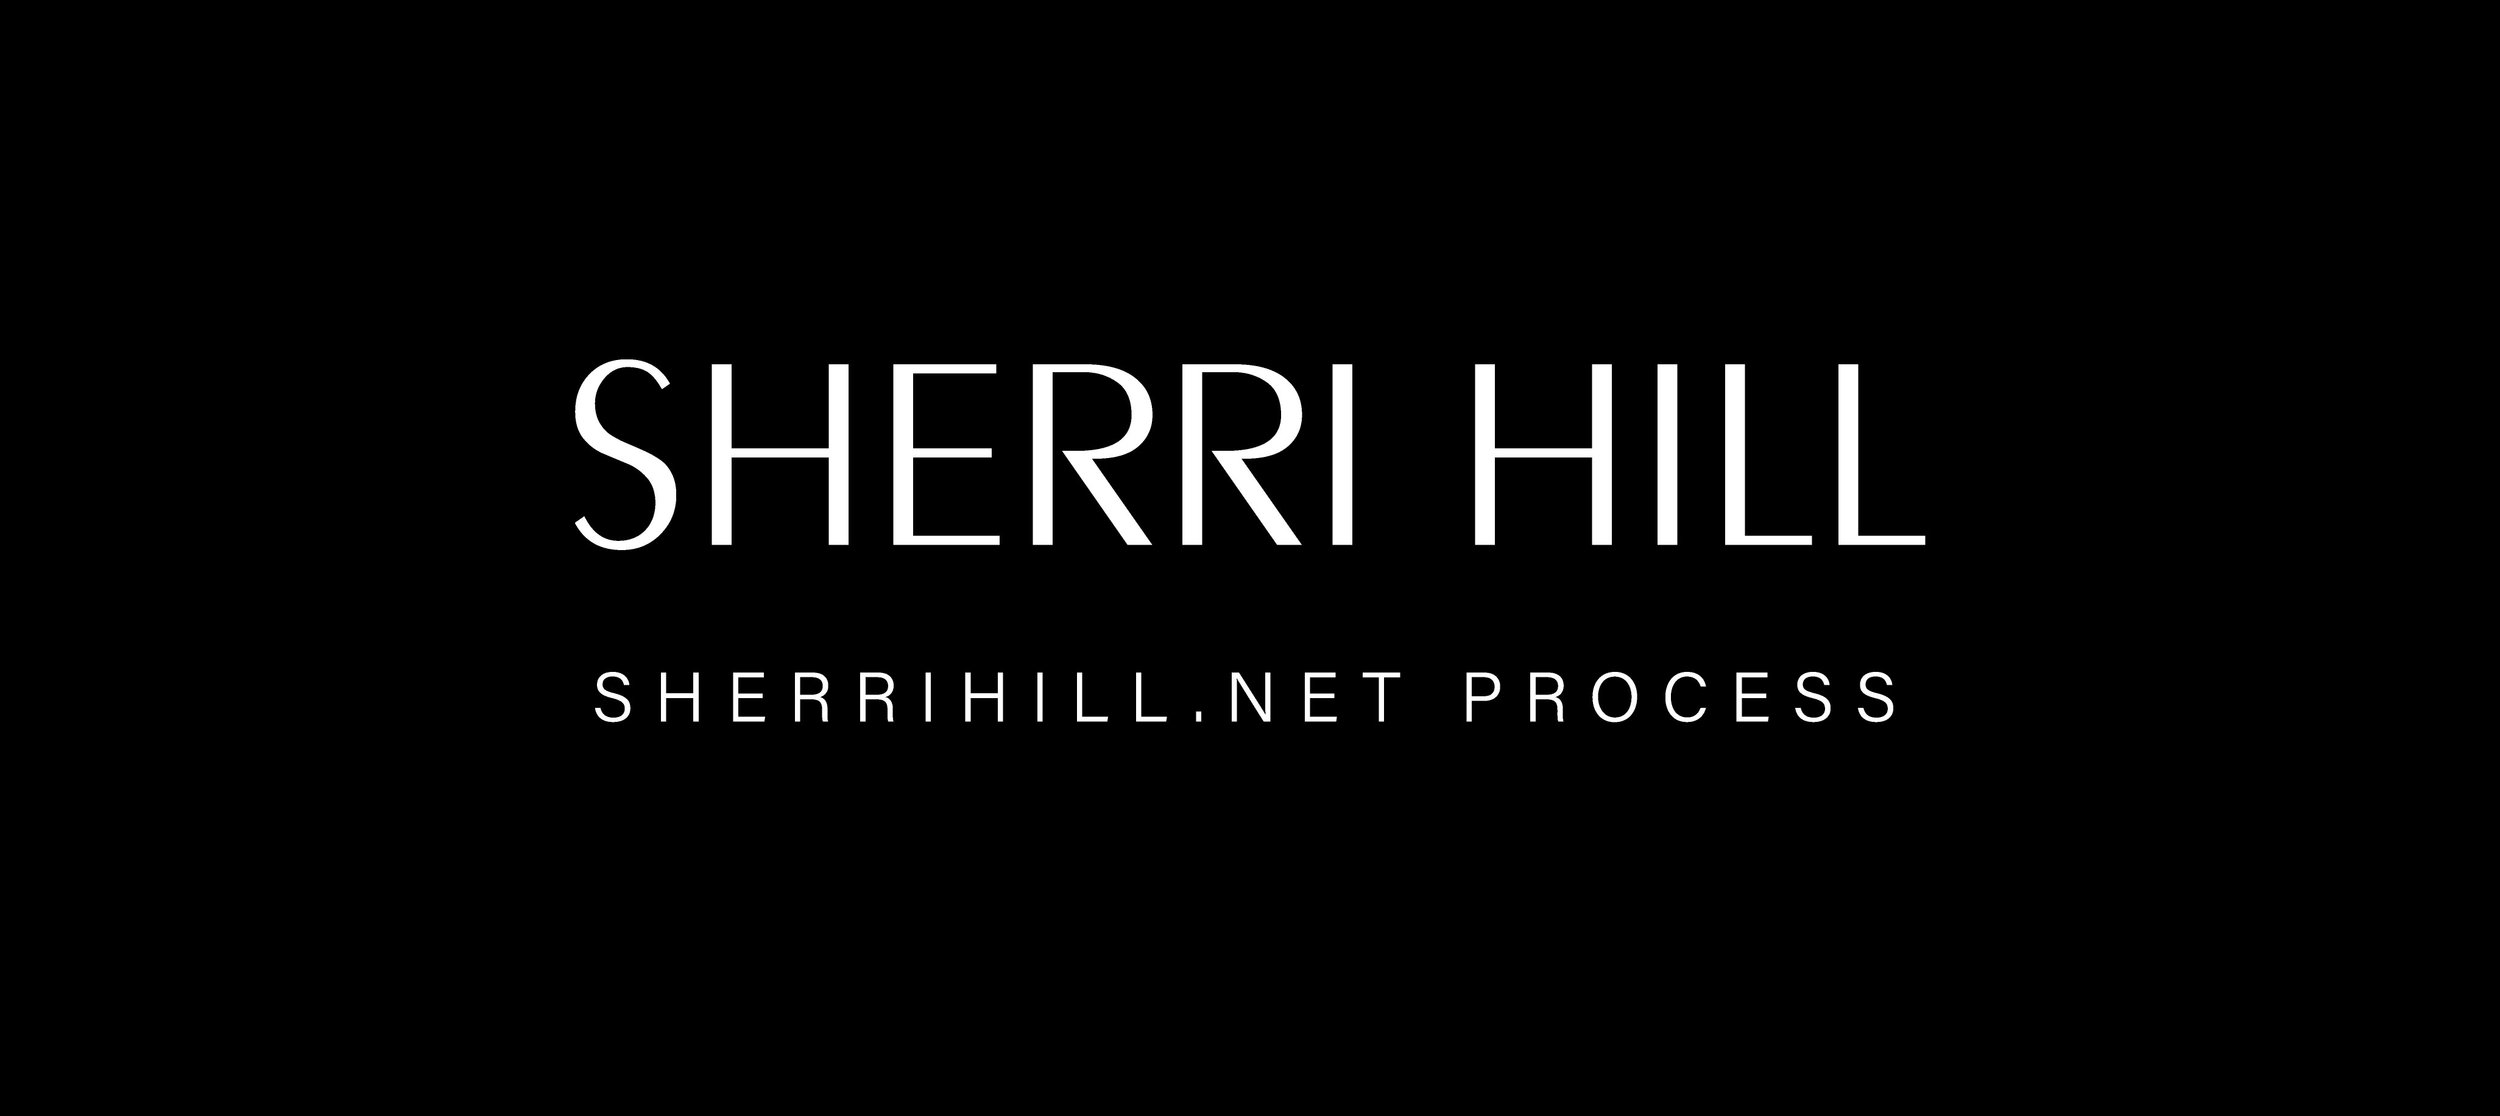 SherriHill.net is a web application for our retailers.